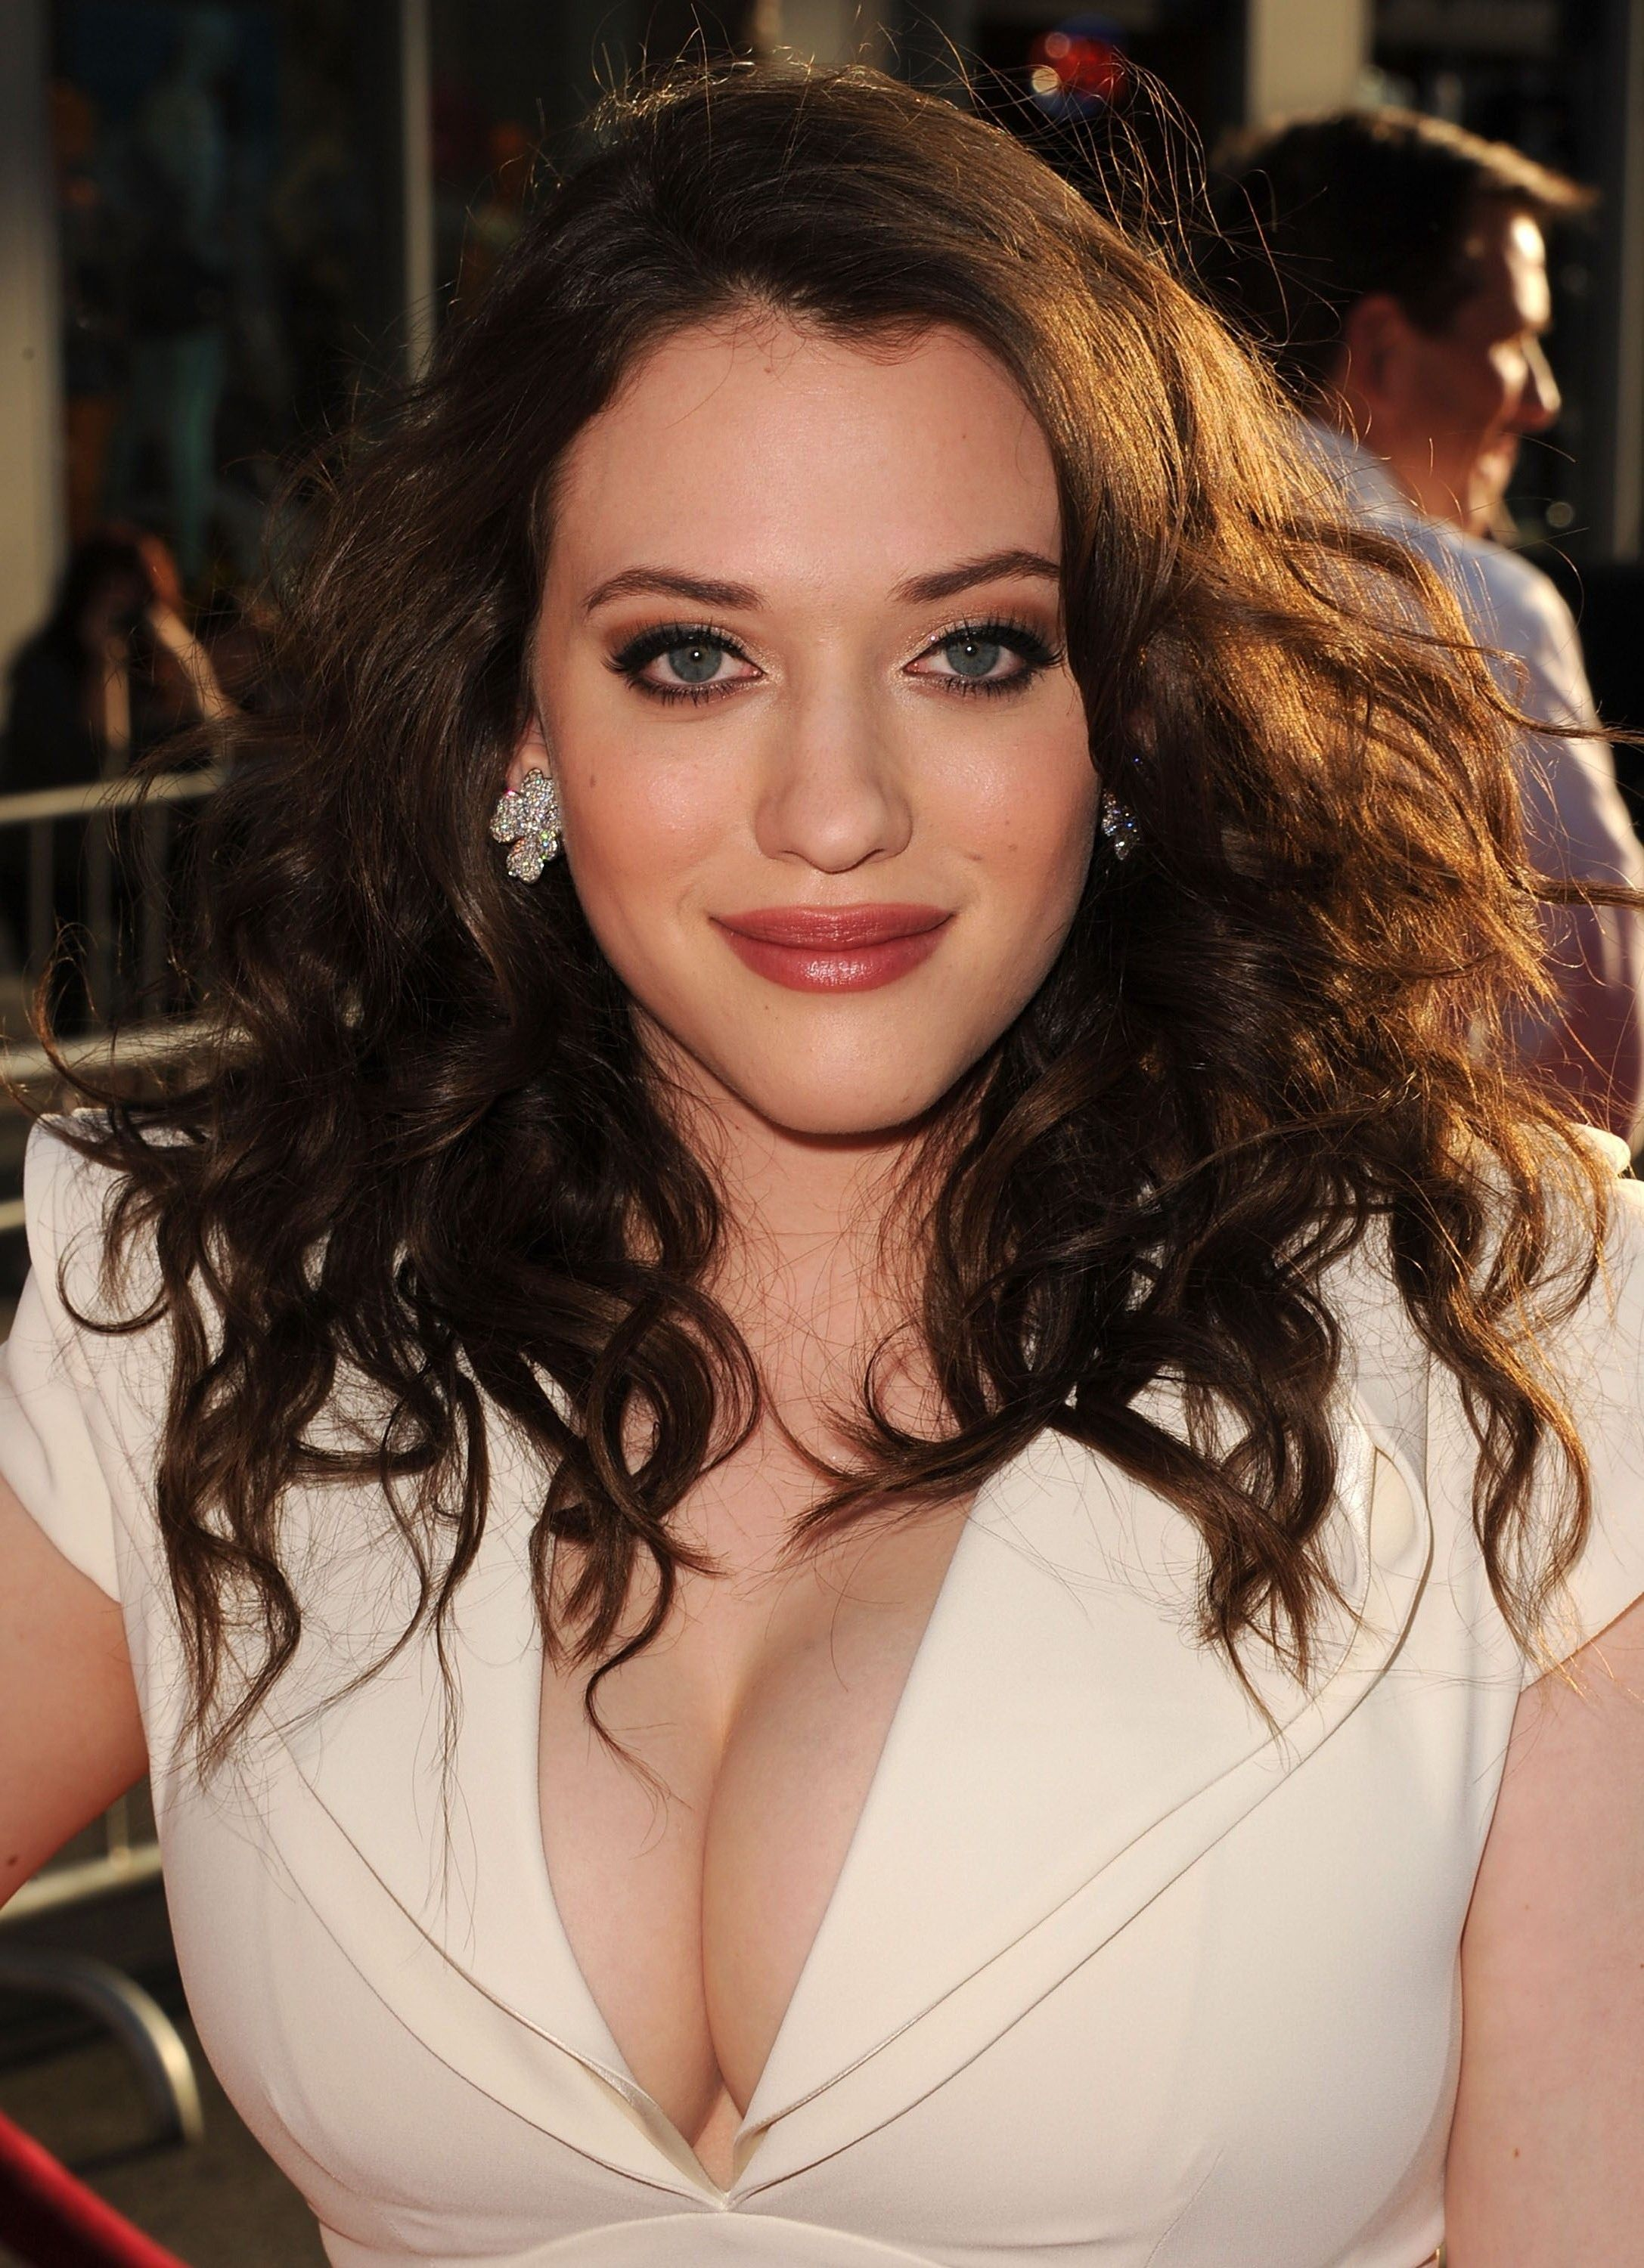 Discussion Hot kat dennings cleavage with you